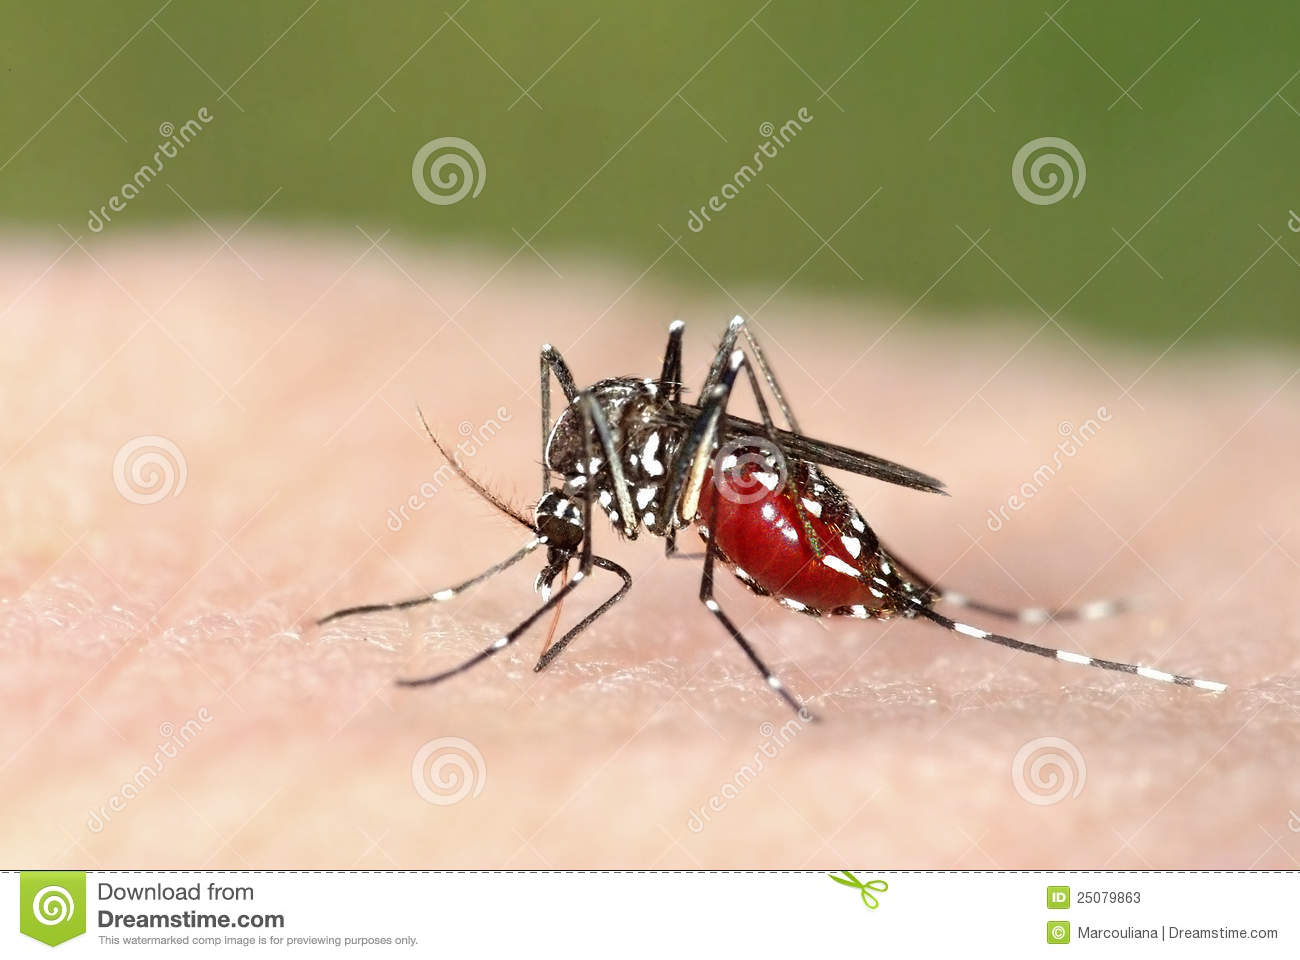 Tiger mosquito meal